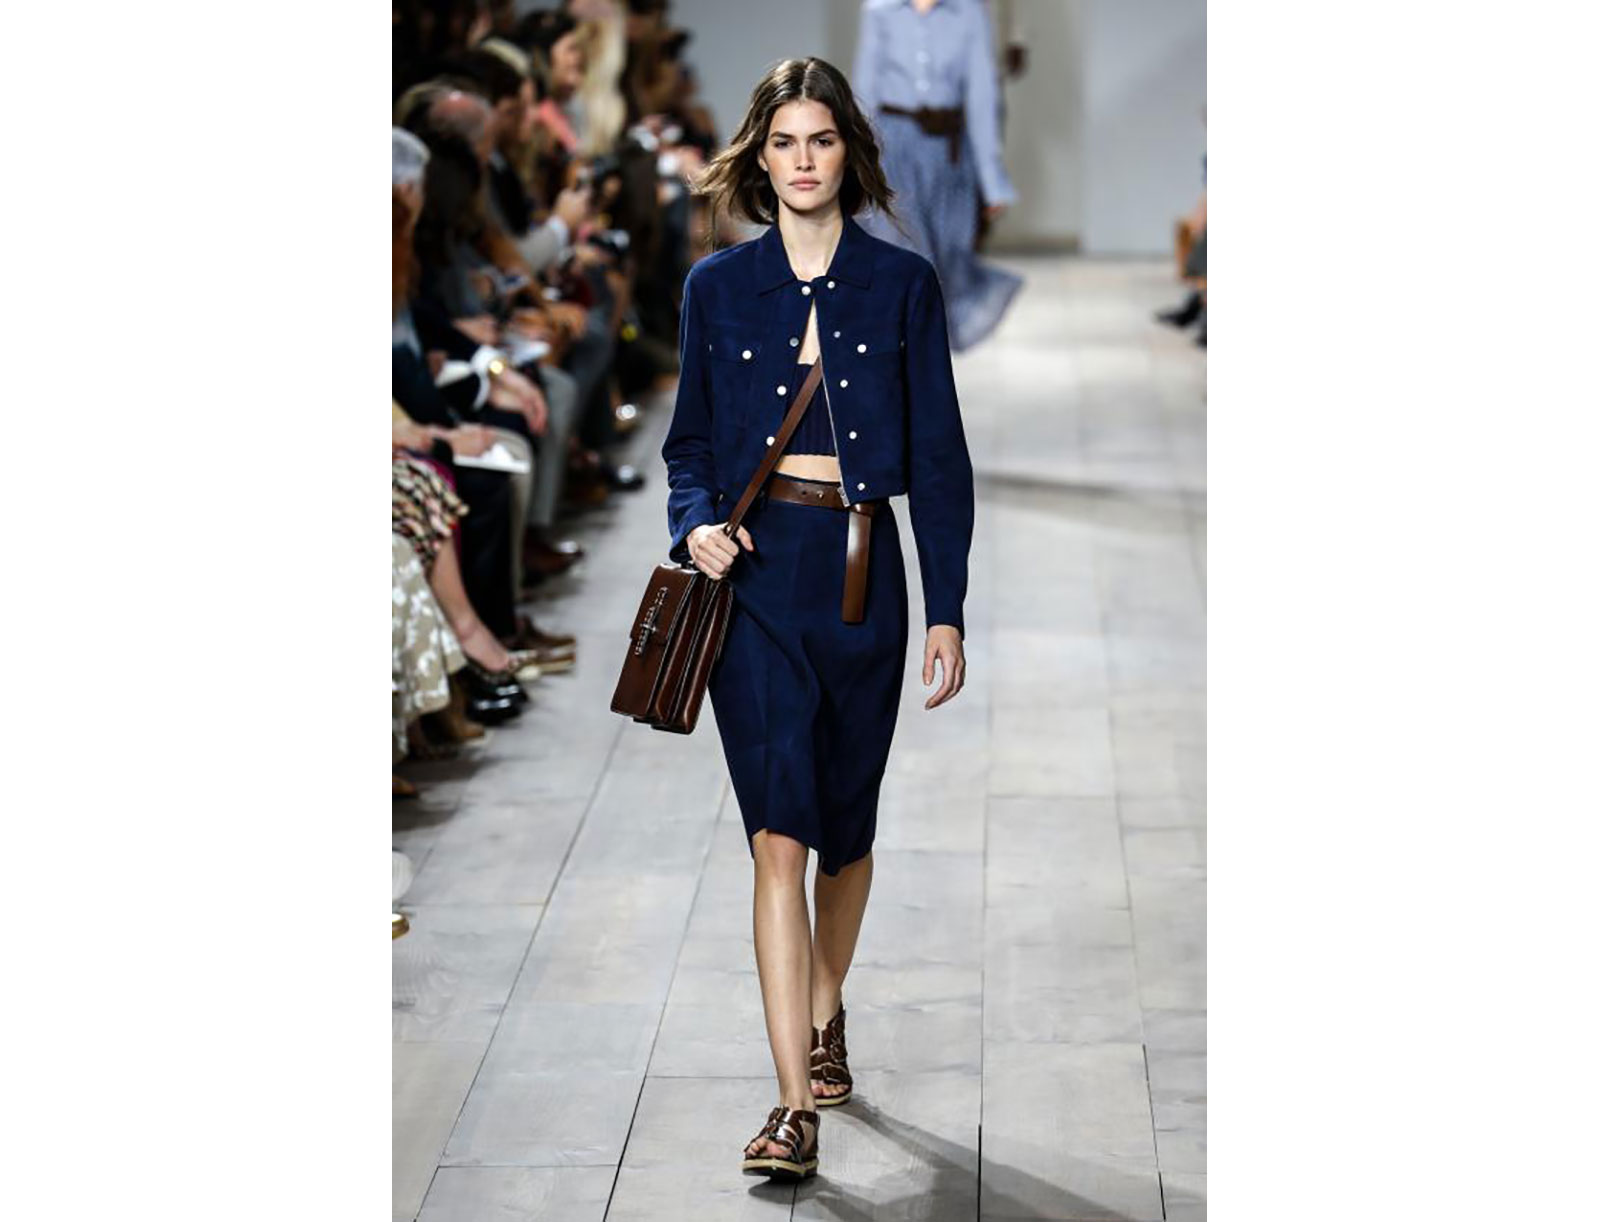 Model-wearing-Michael-Kors.jpg